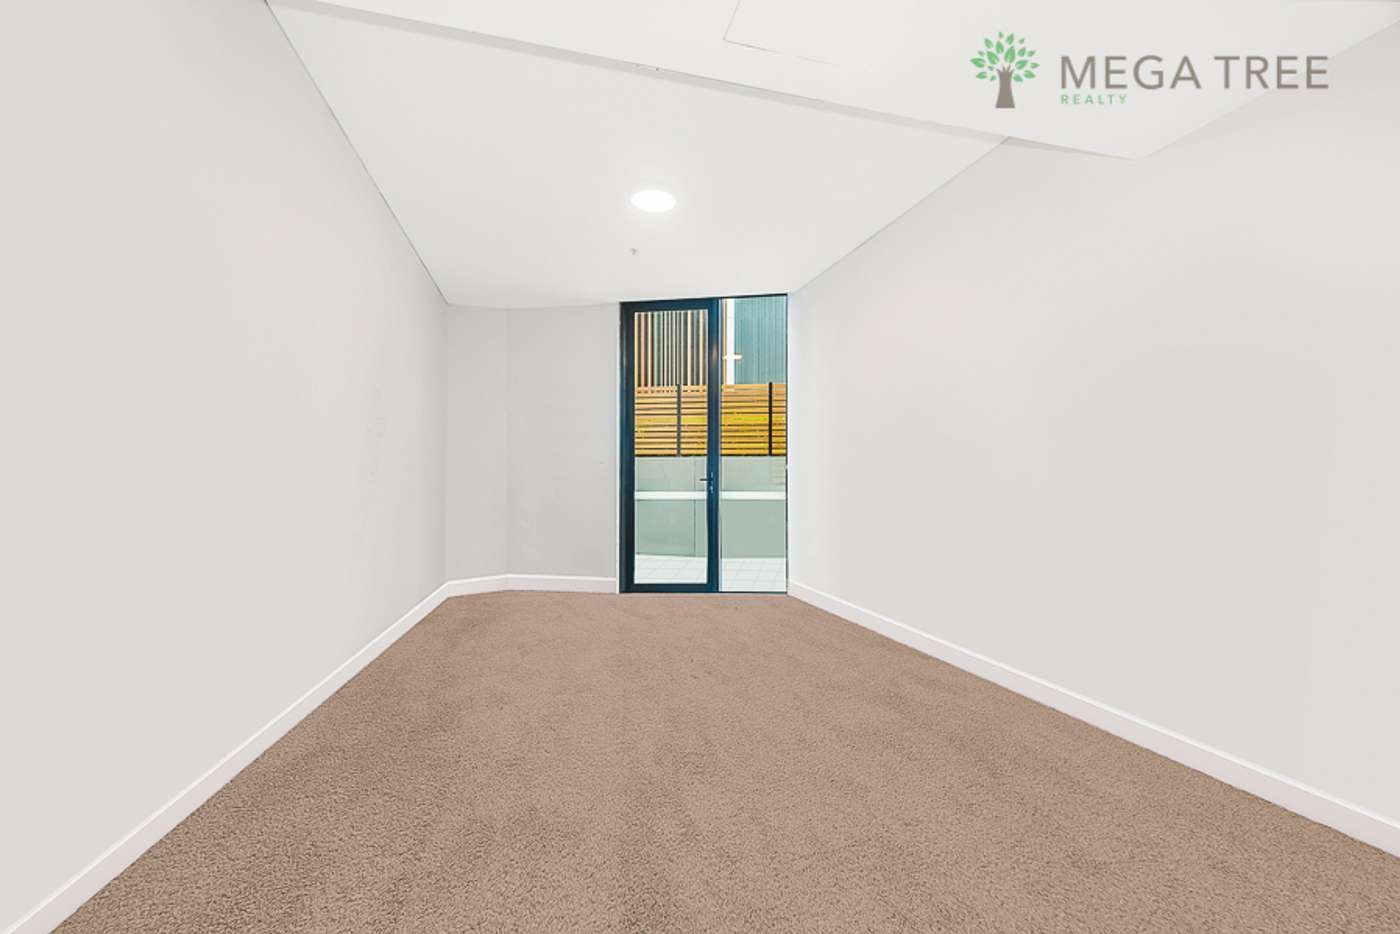 Sixth view of Homely apartment listing, 206/10 Burroway Road, Wentworth Point NSW 2127